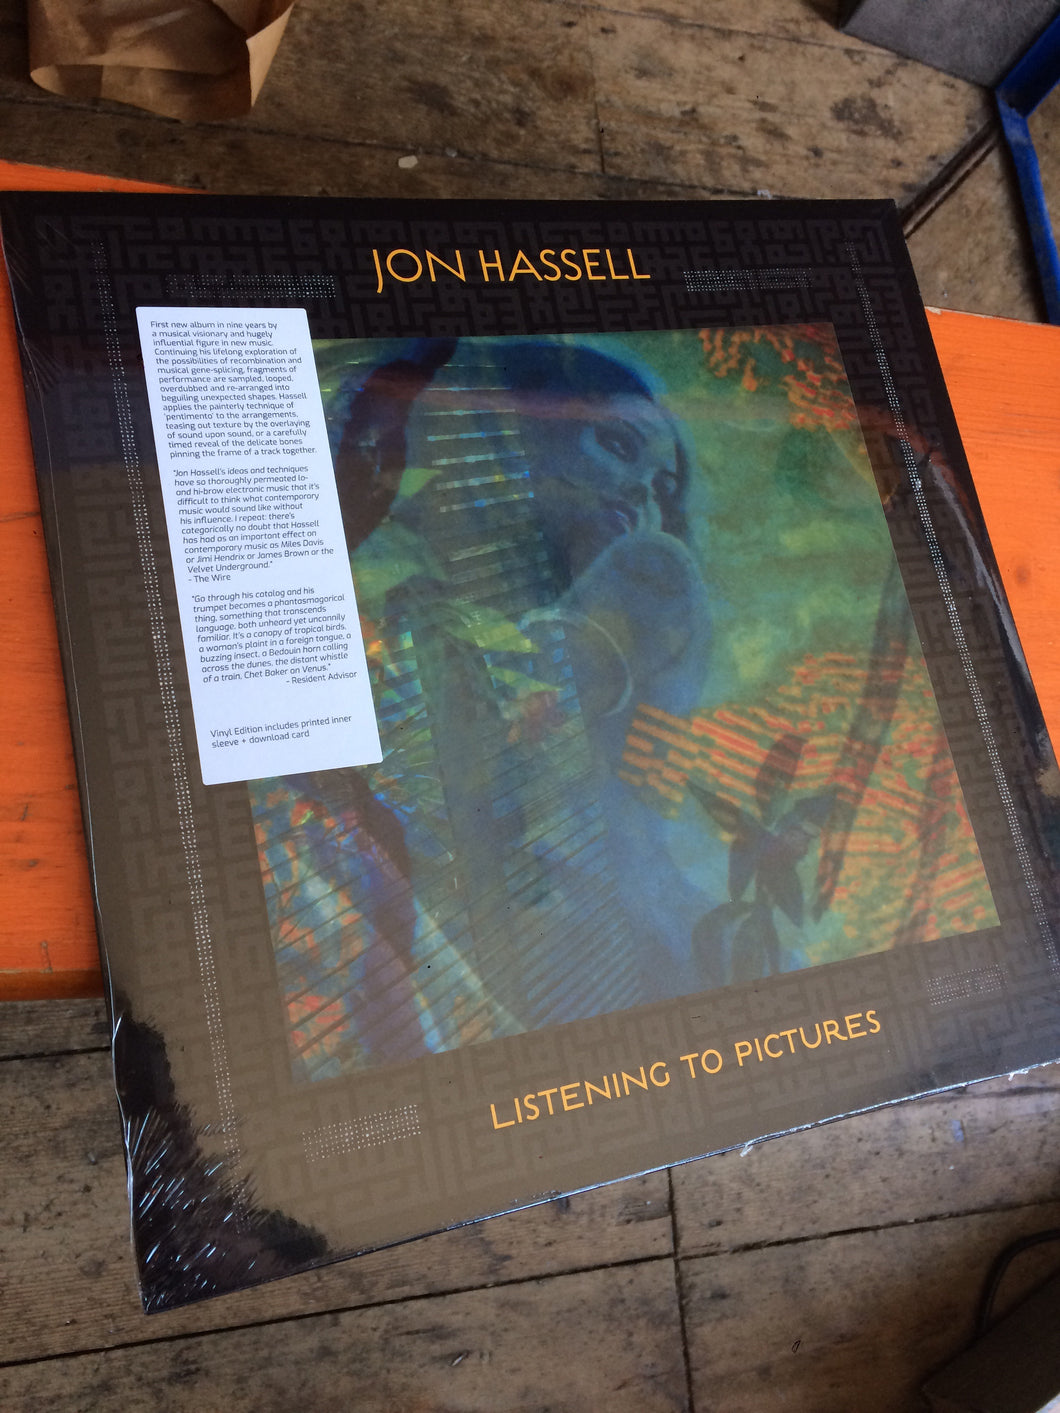 Jon Hassell - Listening To Pictures